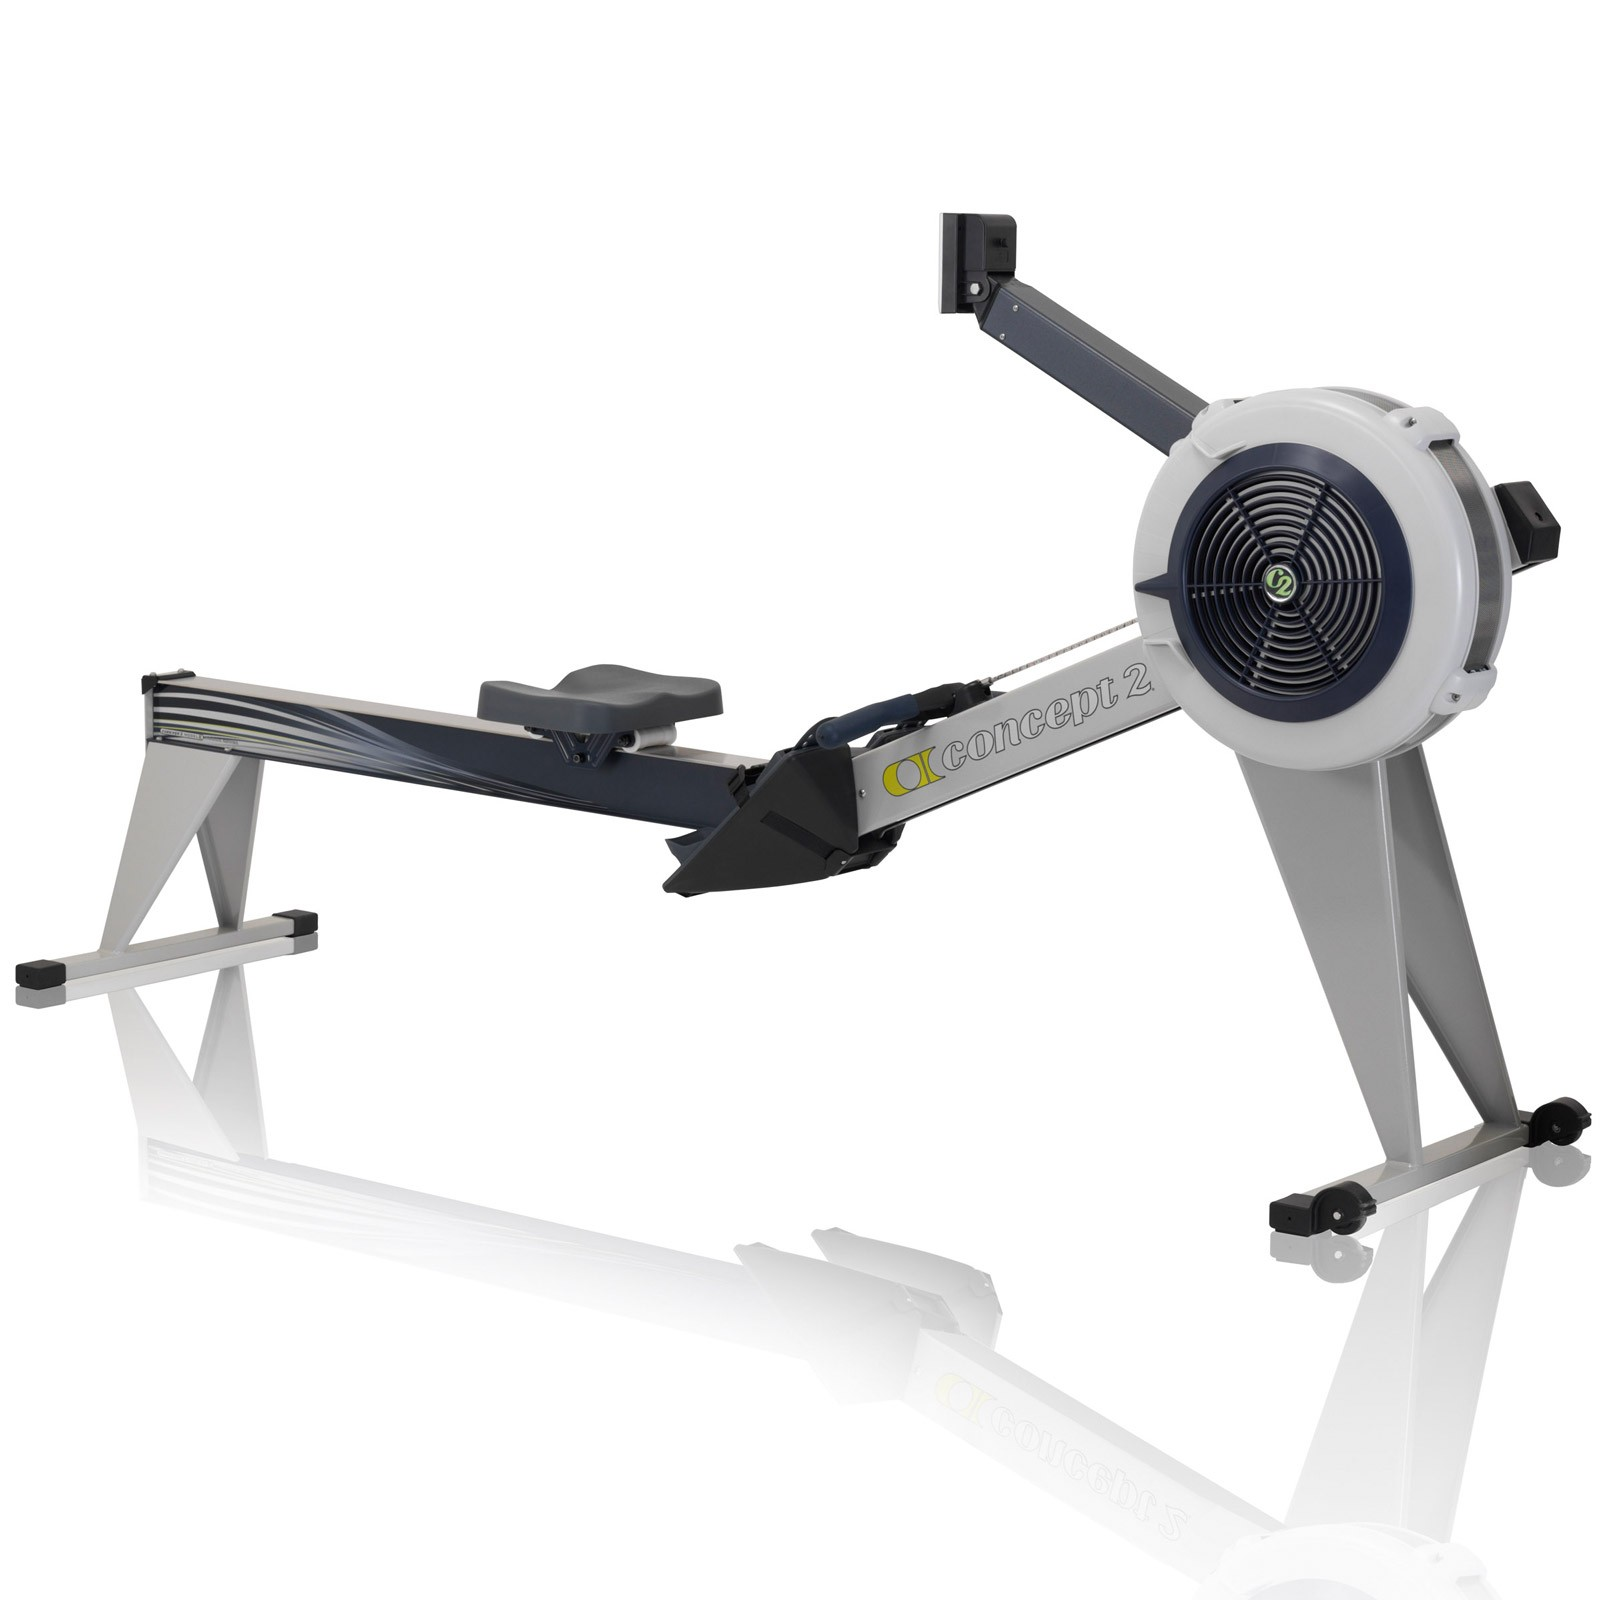 What Is The Best Type Of Rowing Machine To Buy